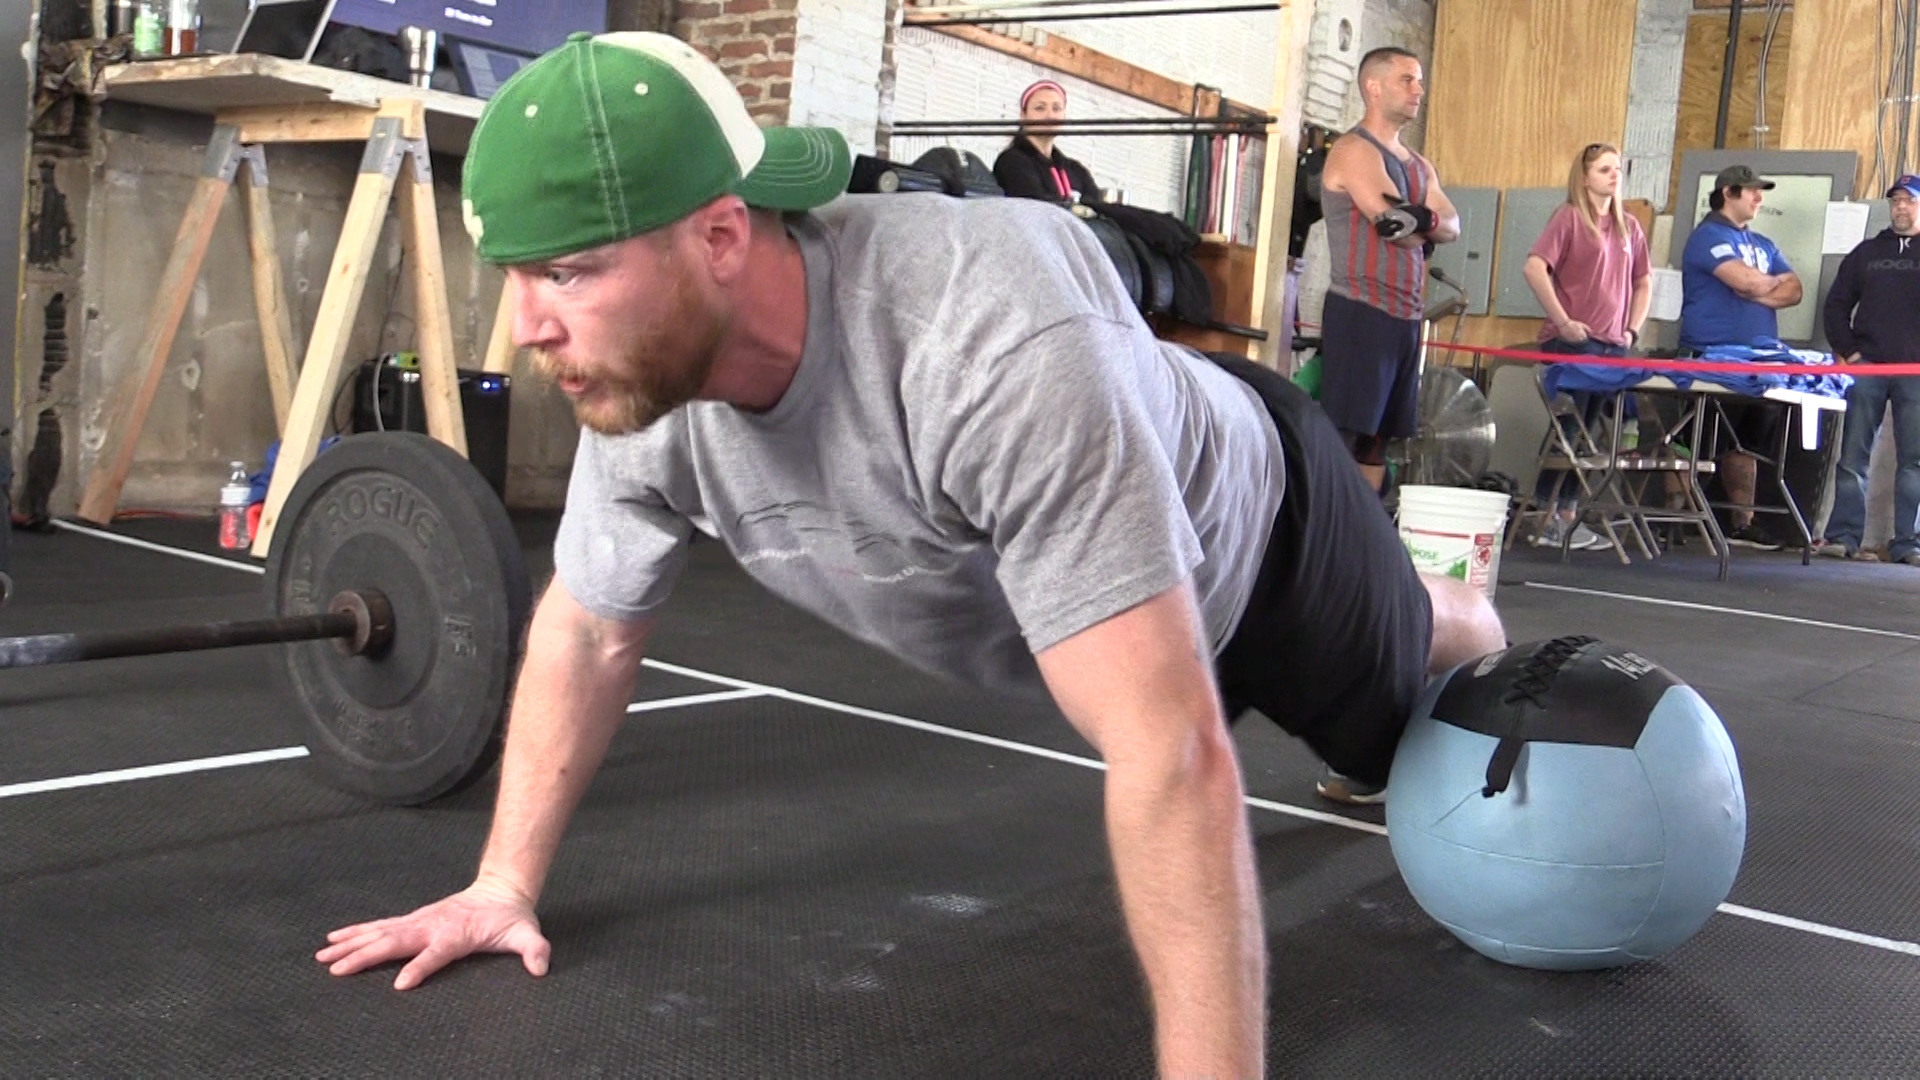 VIDEO - CrossFit to prevent veteran suicide